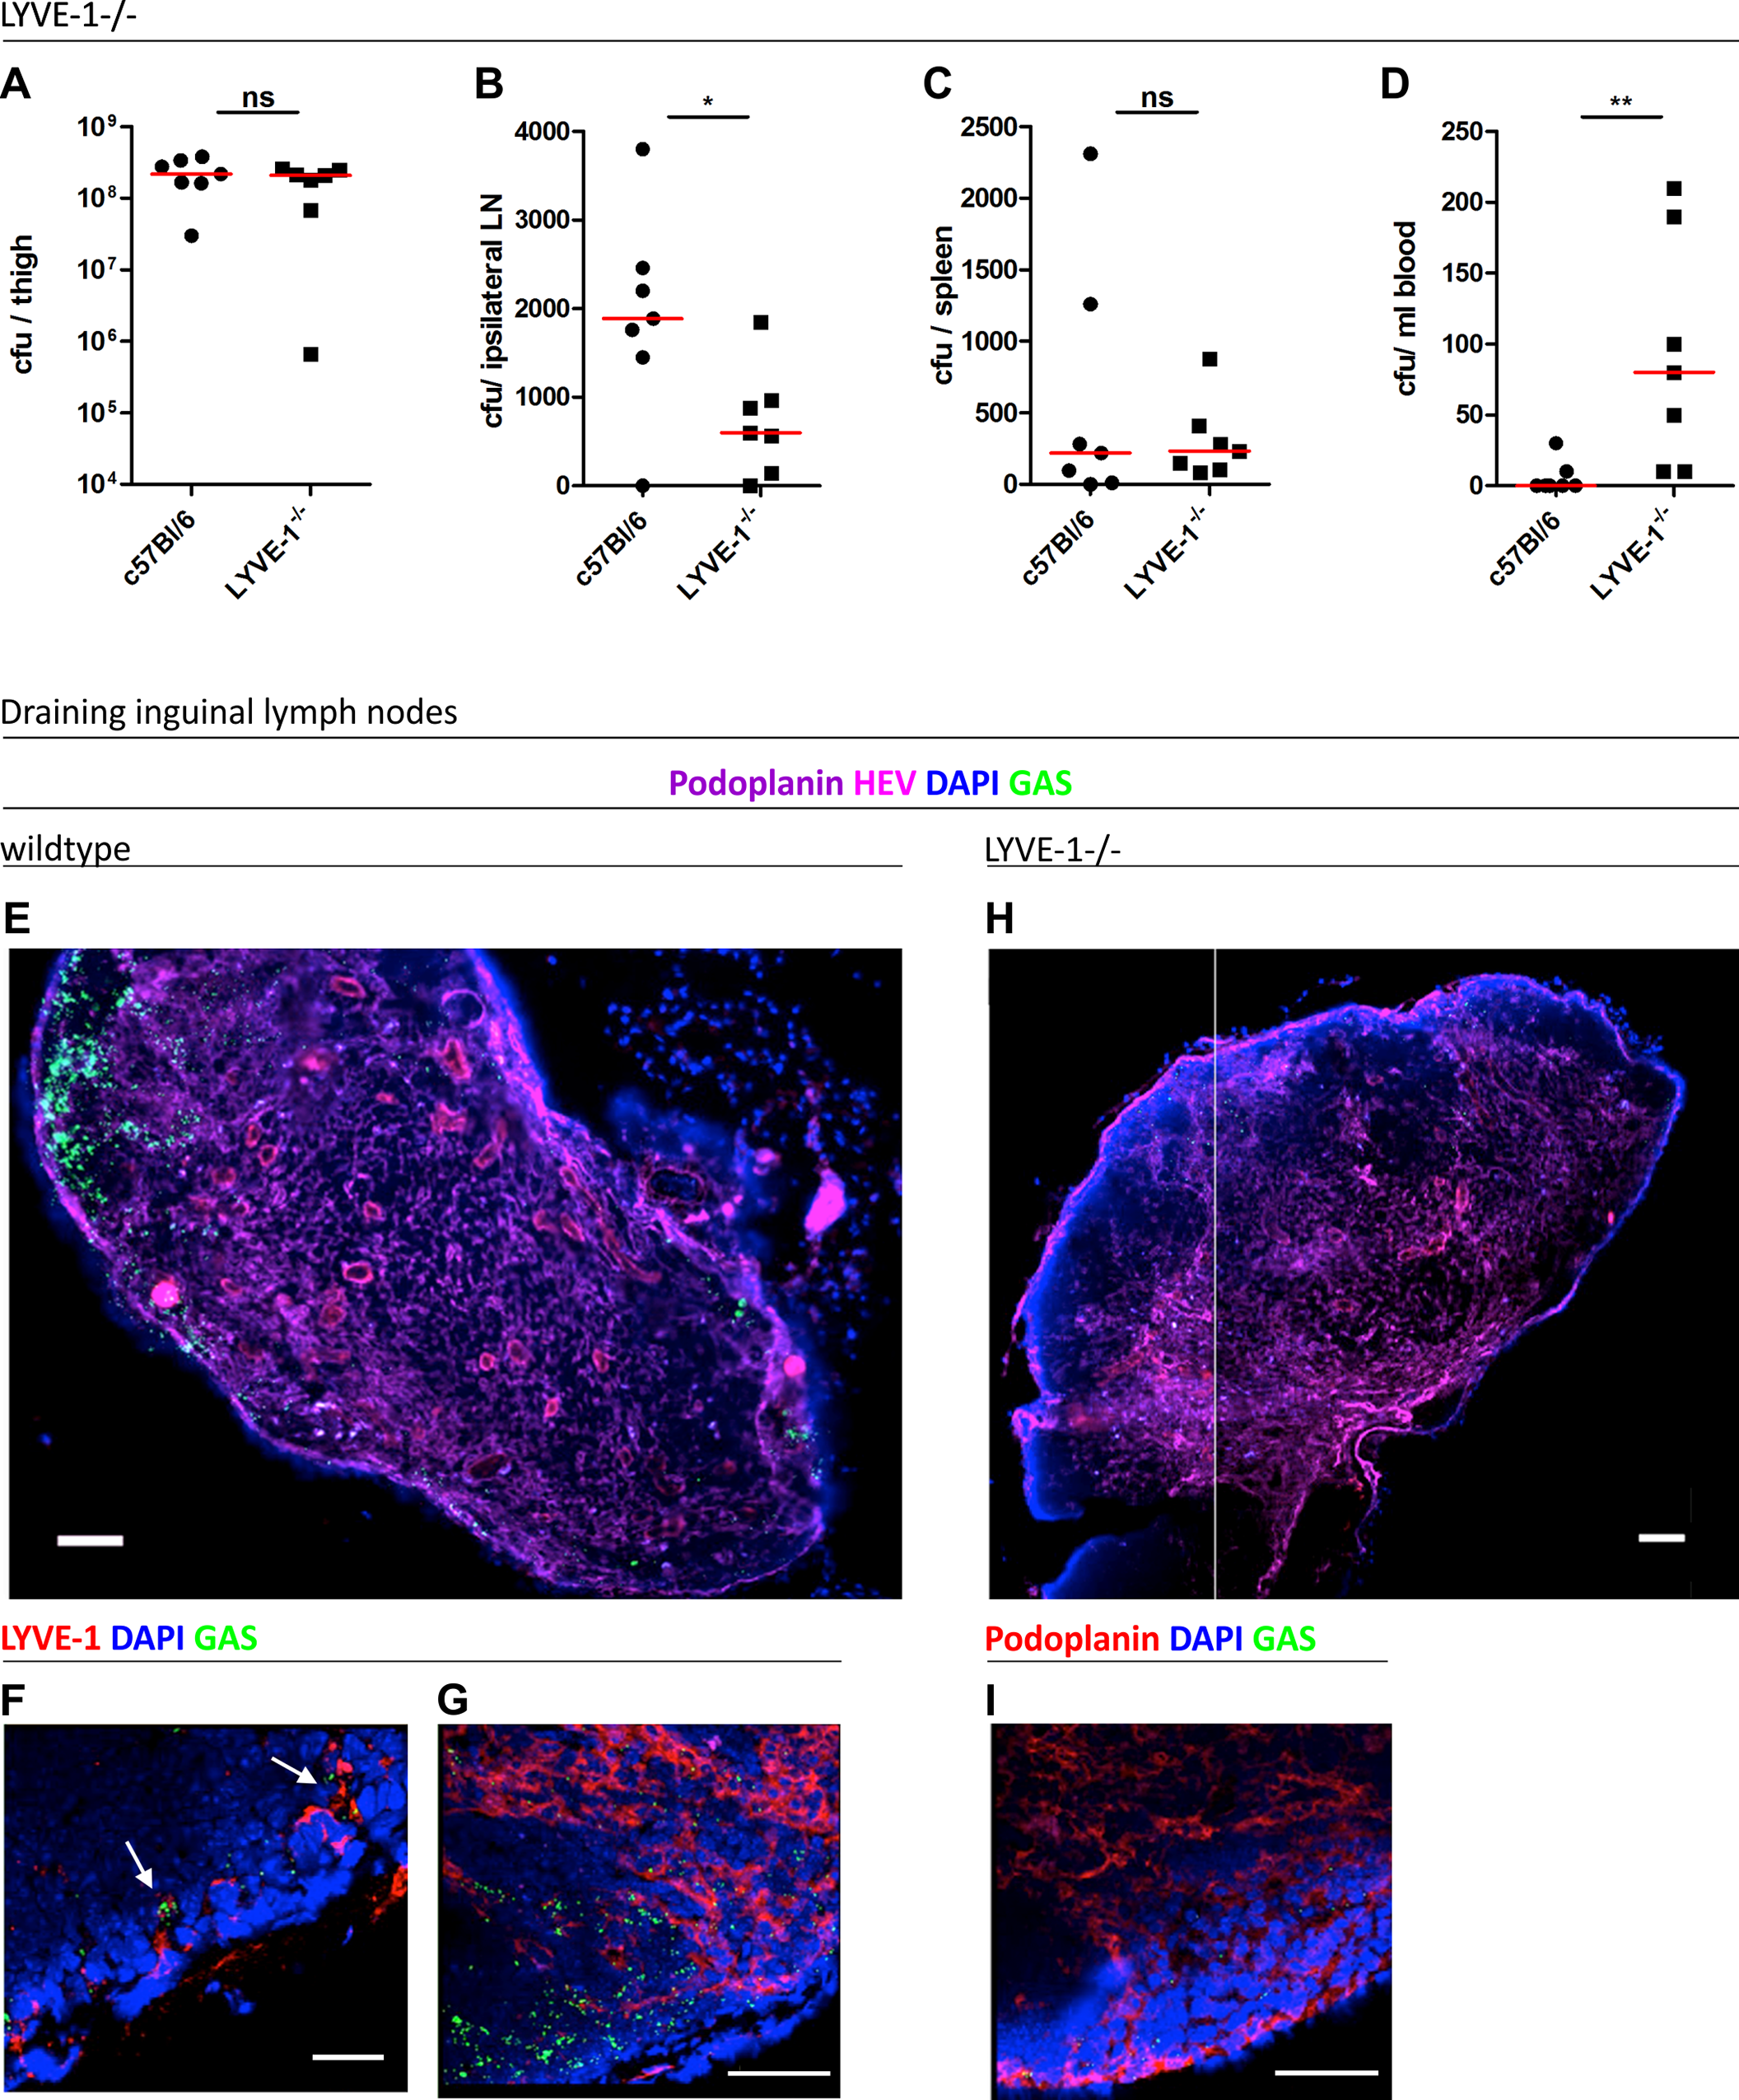 Genetic deletion of LYVE-1 impairs GAS dissemination to draining lymph nodes.